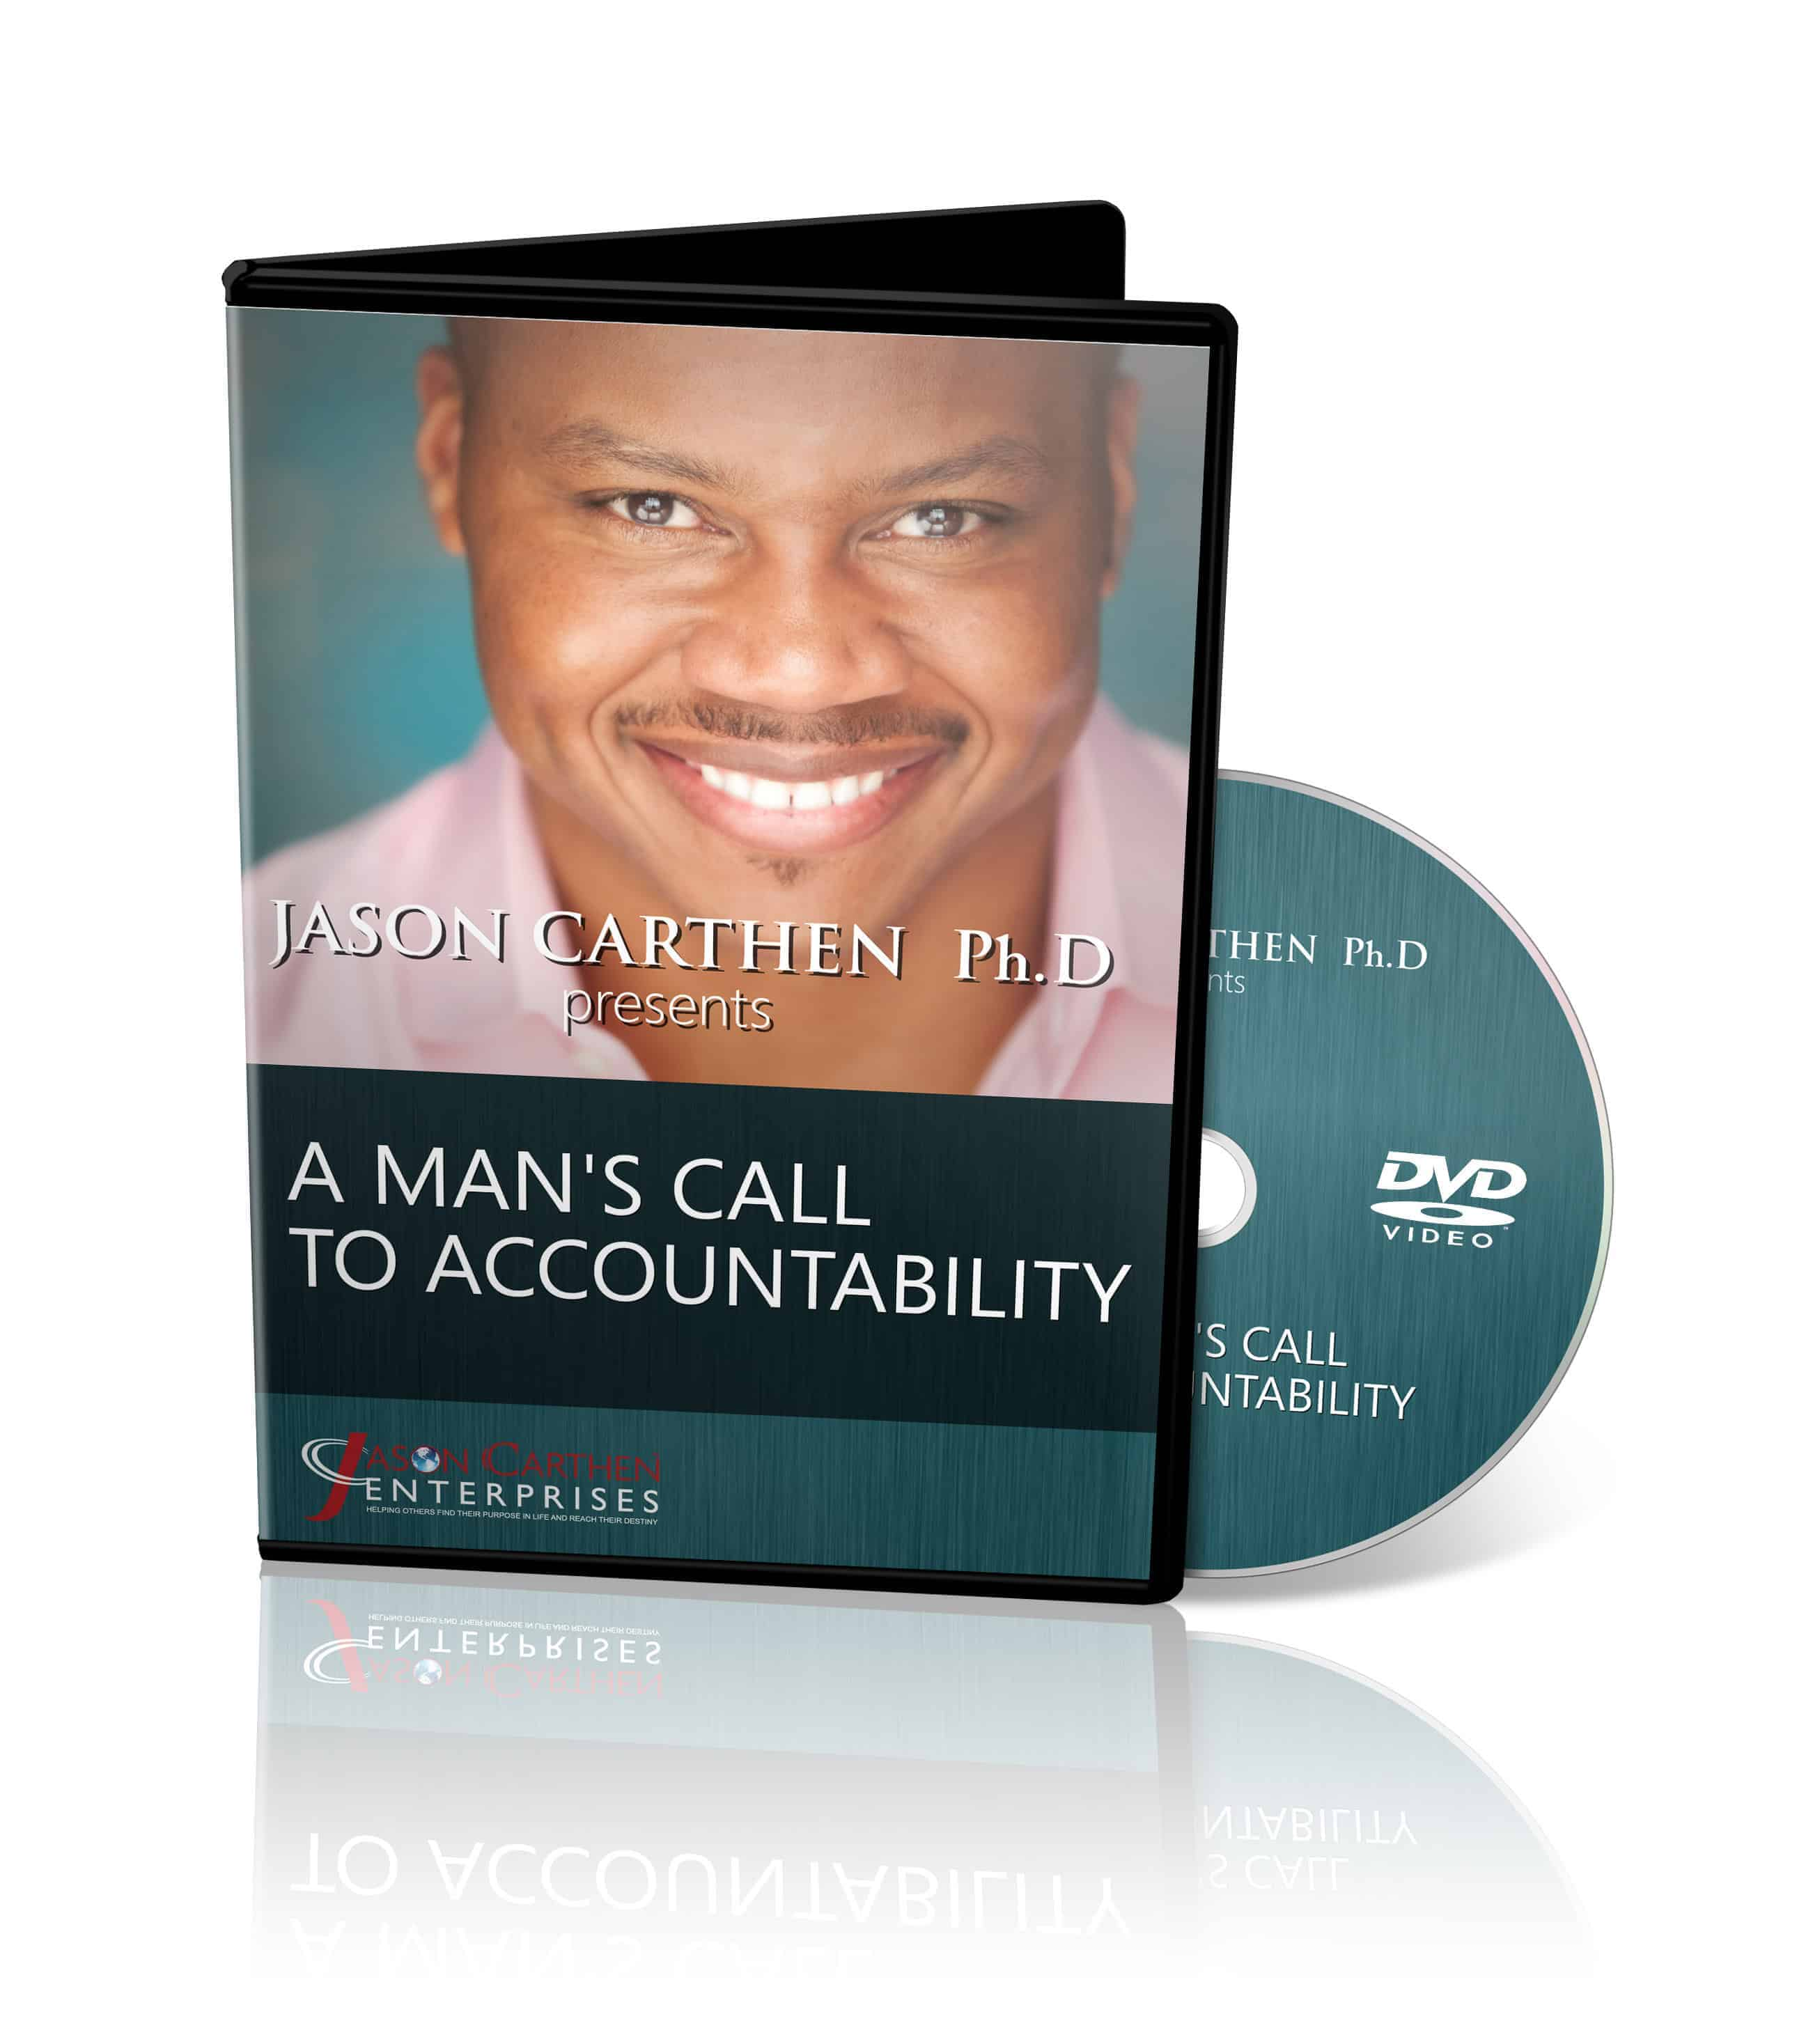 Dr. Jason Carthen: A Man's Call to Accountability DVD